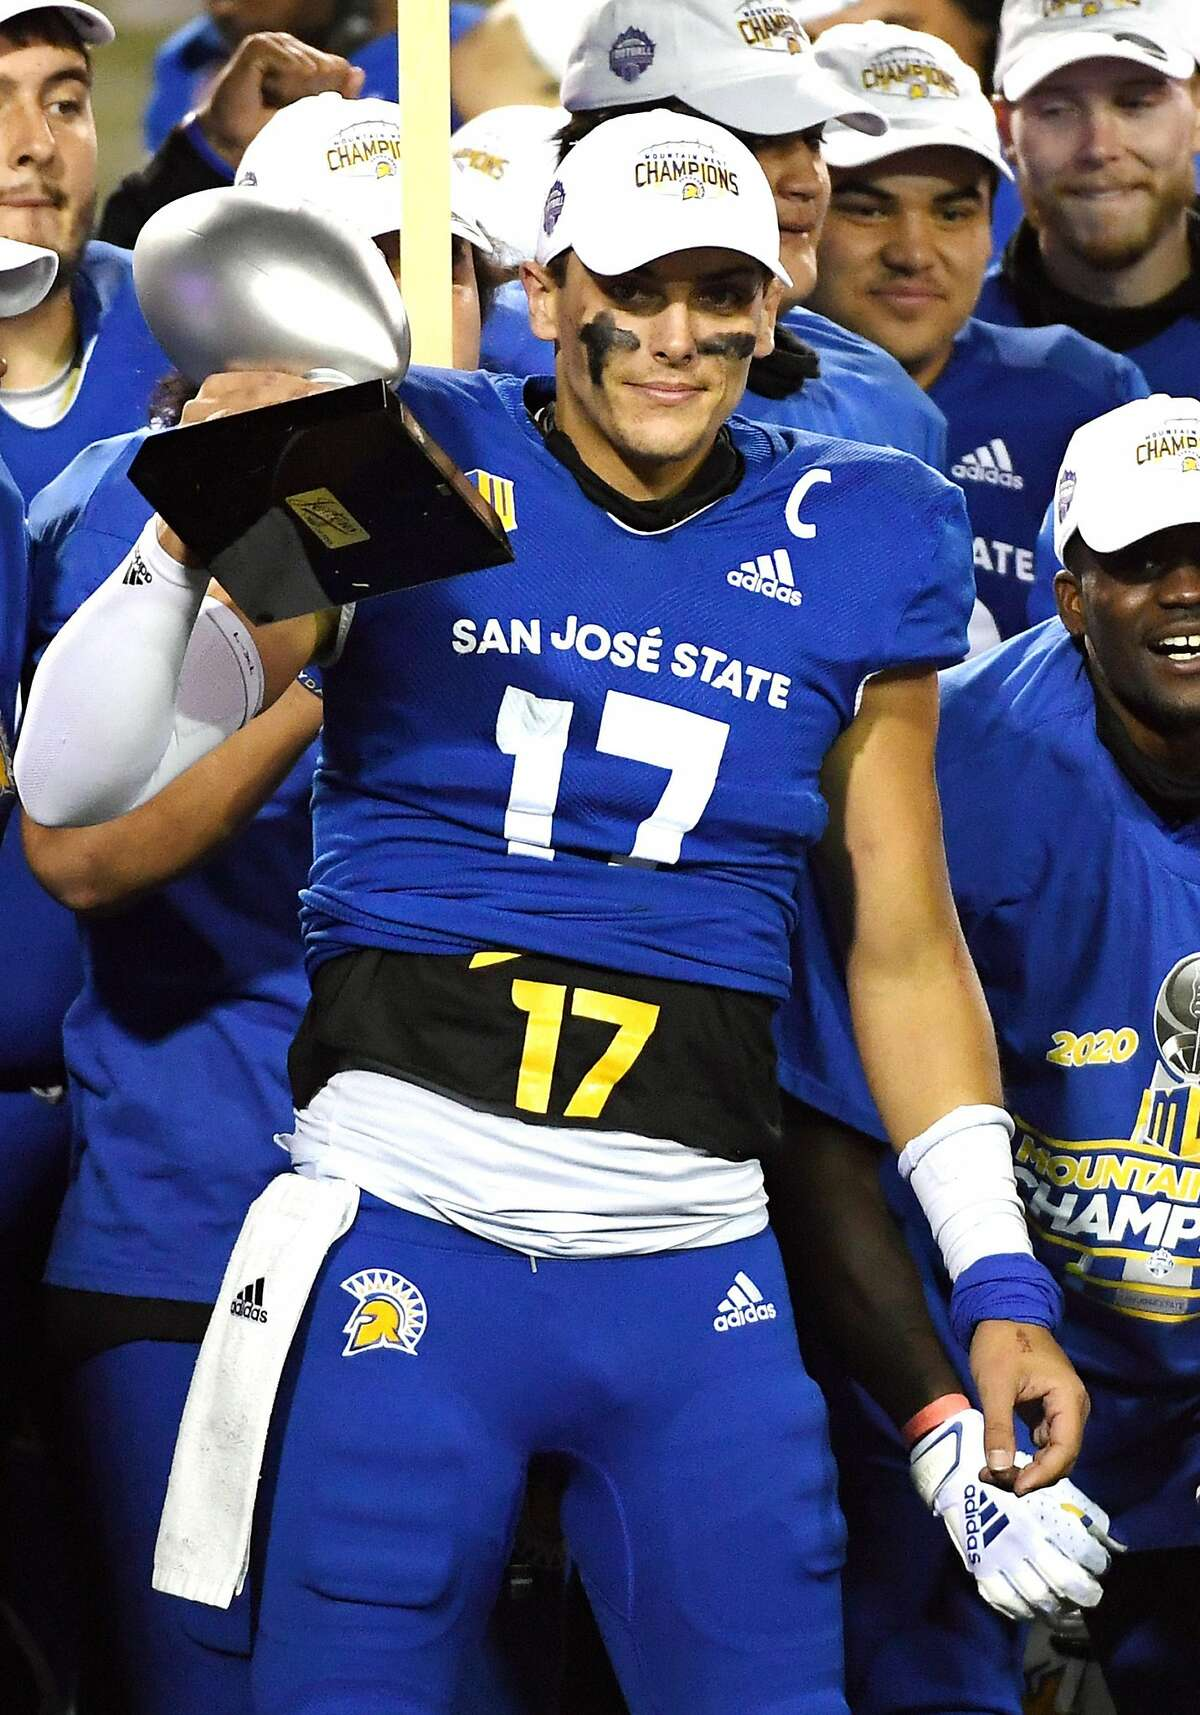 LAS VEGAS, NEVADA - DECEMBER 19: Quarterback Nick Starkel #17 of the San Jose State Spartans lifts up the the Mountain West Championship game offensive MVP trophy after the team defeated the Boise State Broncos 34-20 to win the Mountain West Football Championship at Sam Boyd Stadium on December 19, 2020 in Las Vegas, Nevada. (Photo by Ethan Miller/Getty Images)